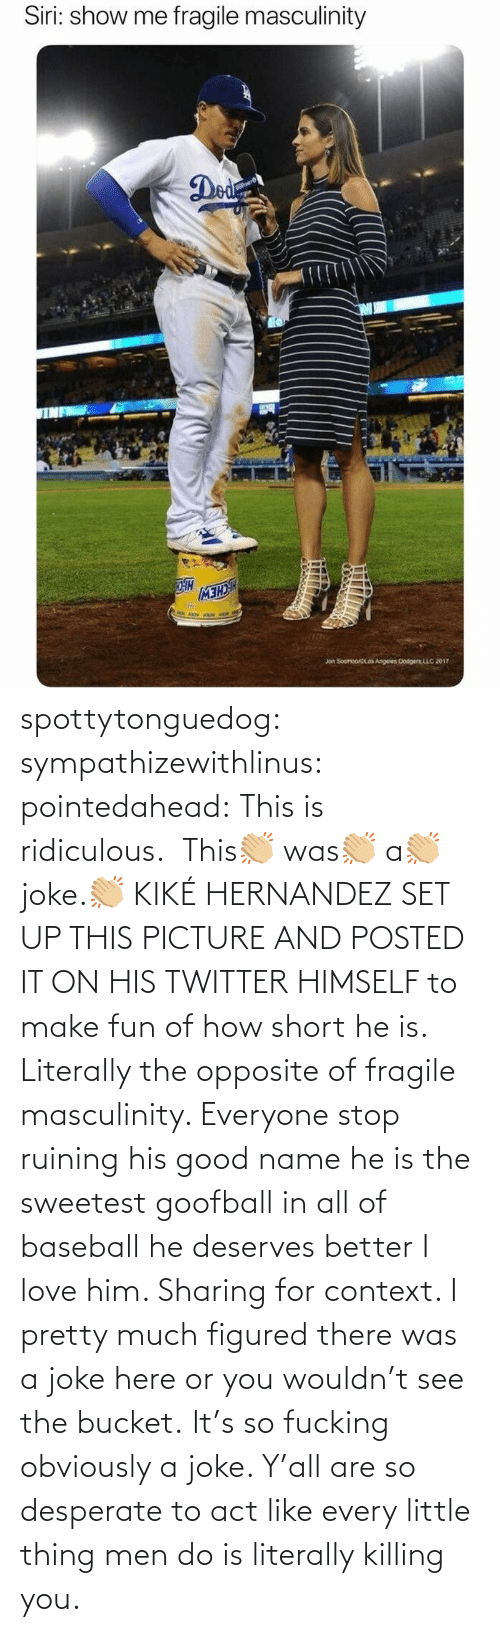 literally: spottytonguedog:  sympathizewithlinus:   pointedahead: This is ridiculous.  This👏🏼 was👏🏼 a👏🏼 joke.👏🏼 KIKÉ HERNANDEZ SET UP THIS PICTURE AND POSTED IT ON HIS TWITTER HIMSELF to make fun of how short he is. Literally the opposite of fragile masculinity. Everyone stop ruining his good name he is the sweetest goofball in all of baseball he deserves better I love him.    Sharing for context. I pretty much figured there was a joke here or you wouldn't see the bucket.    It's so fucking obviously a joke. Y'all are so desperate to act like every little thing men do is literally killing you.